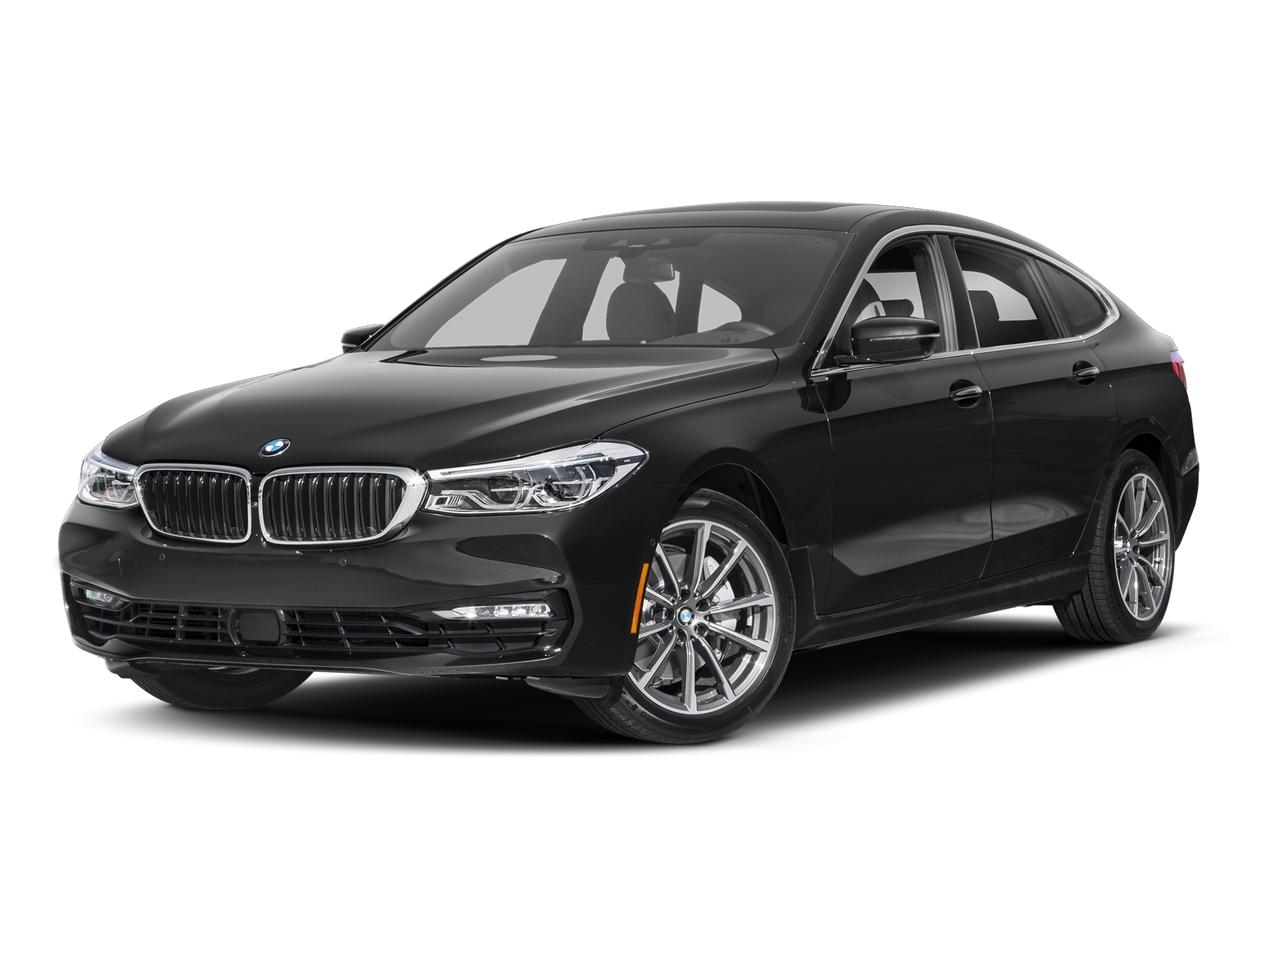 2018 BMW 640i xDrive Vehicle Photo in Pleasanton, CA 94588